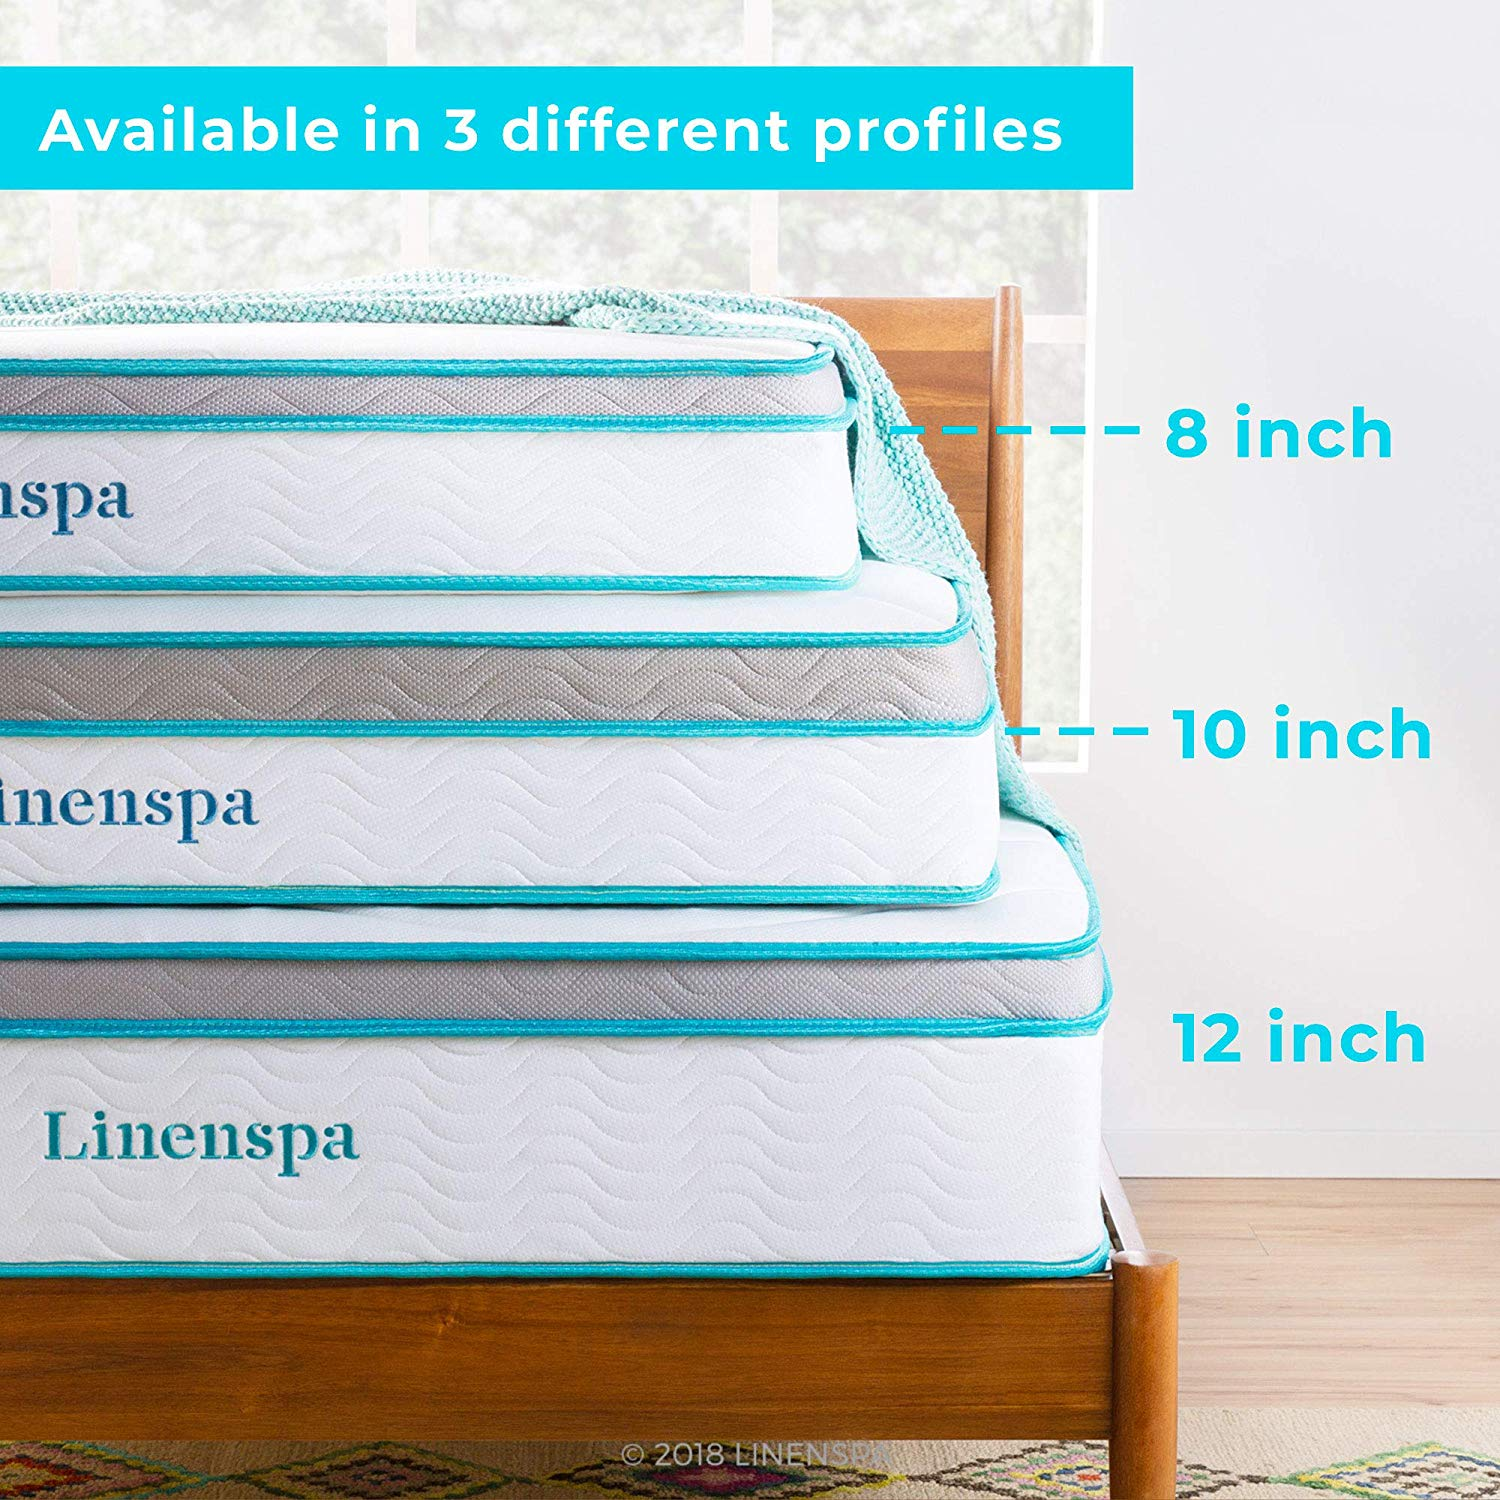 LINENSPA Innerspring Best hybrid mattress size